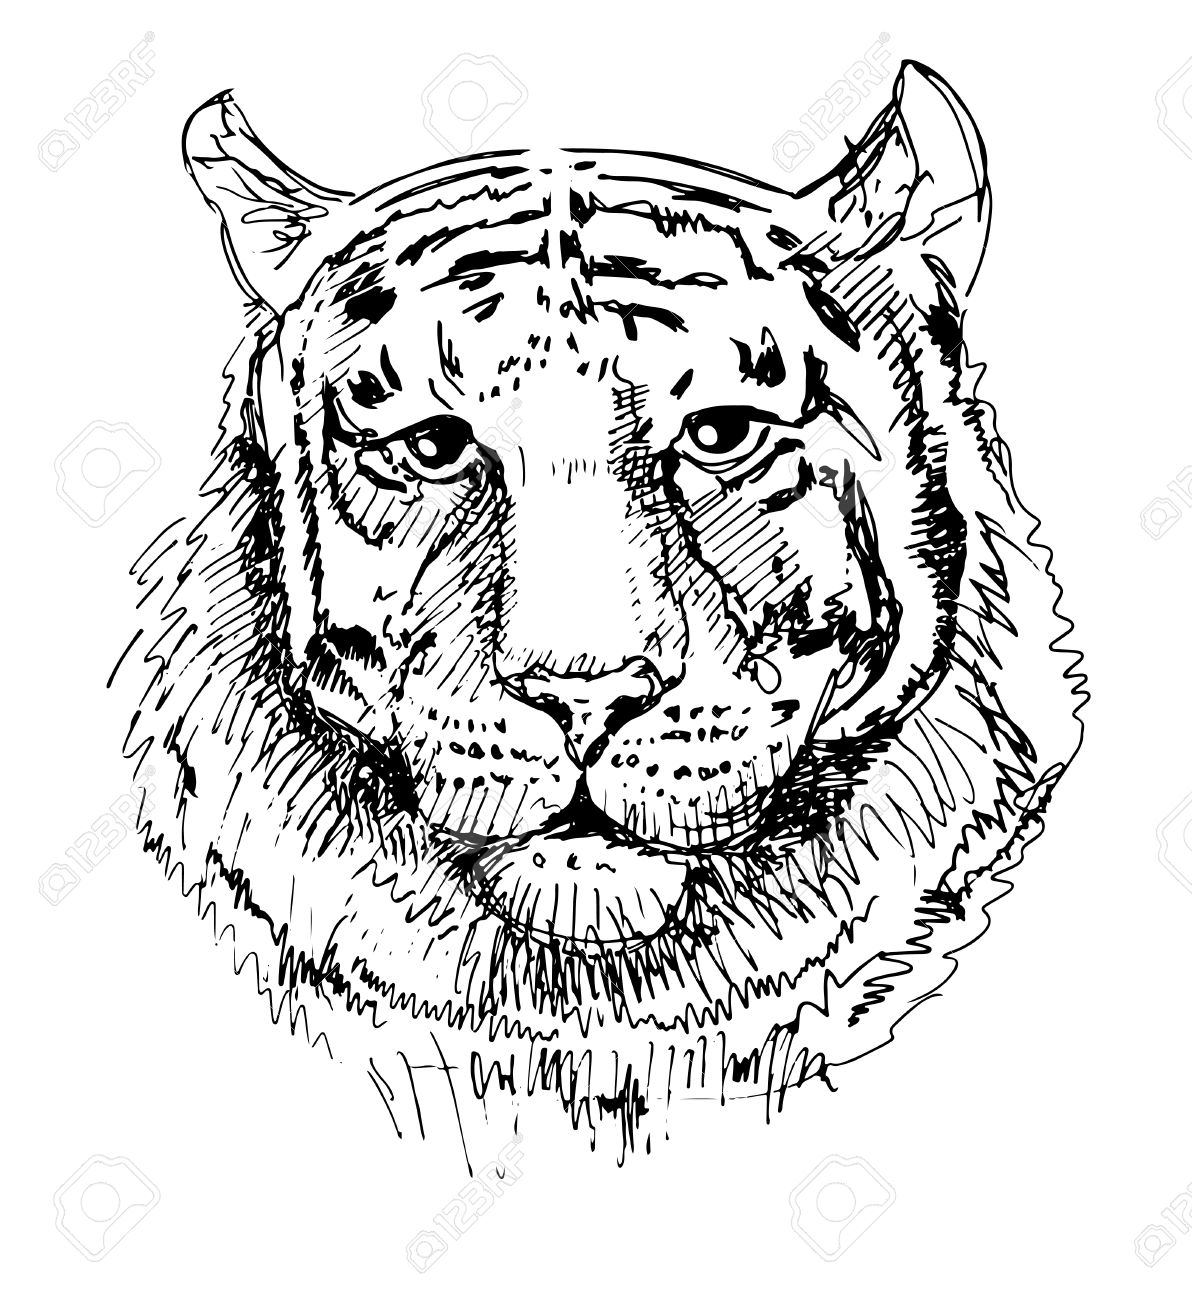 Artwork Tiger Sketch Black And White Drawing Isolated On White